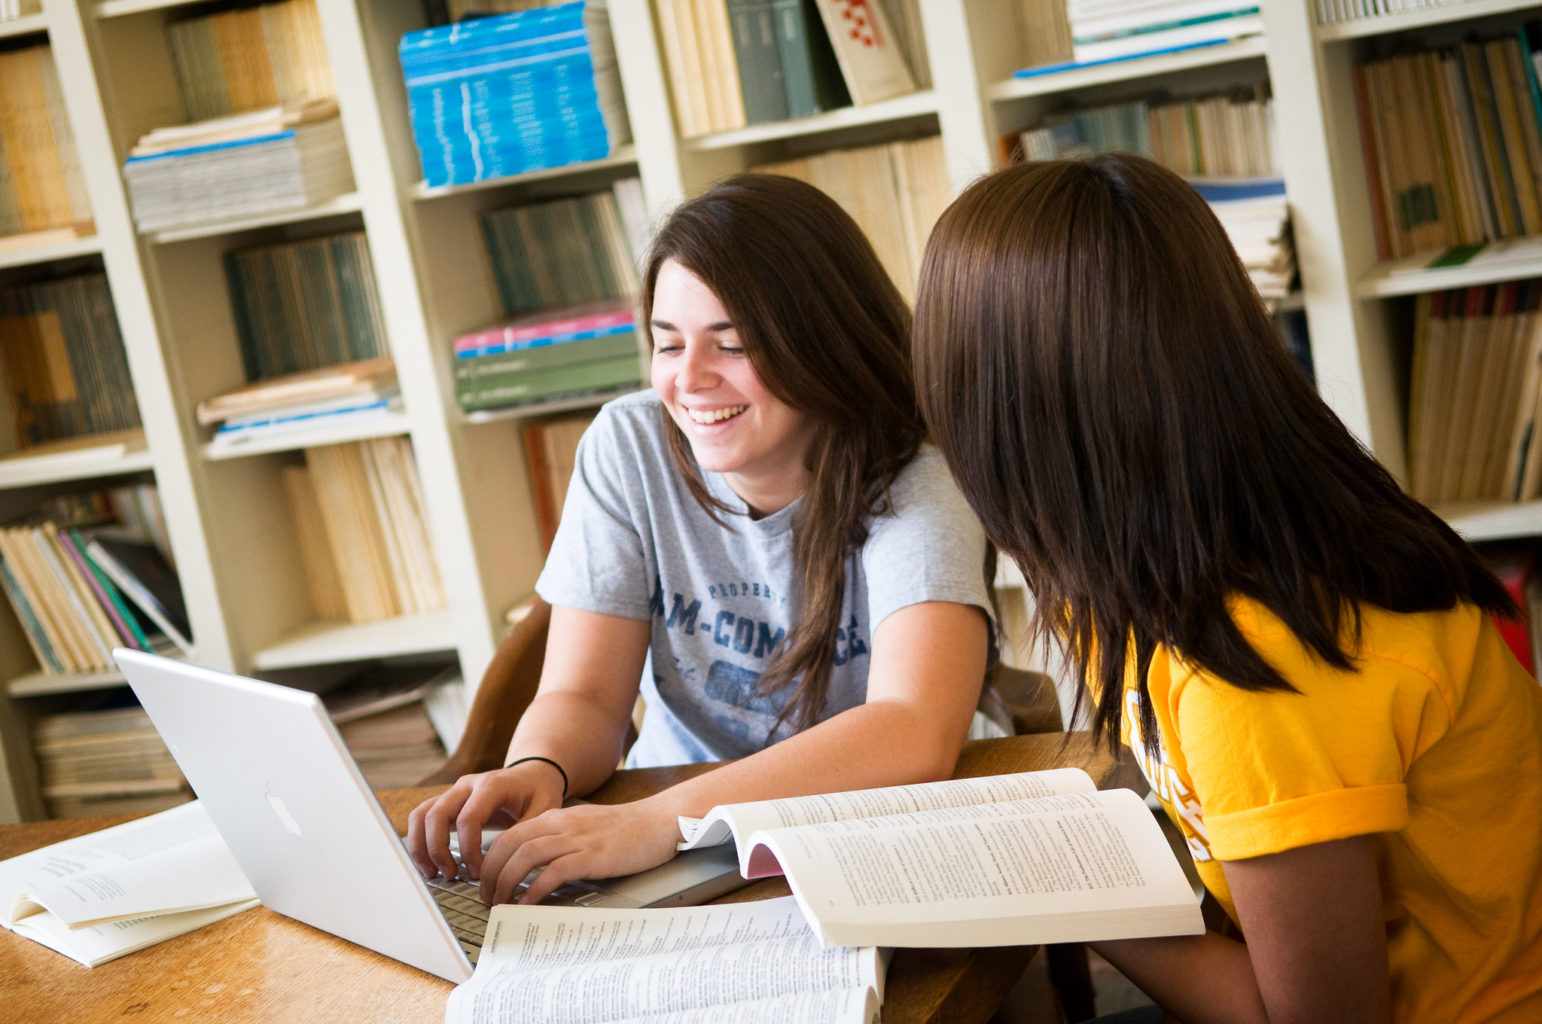 Two students doing homework in the library.